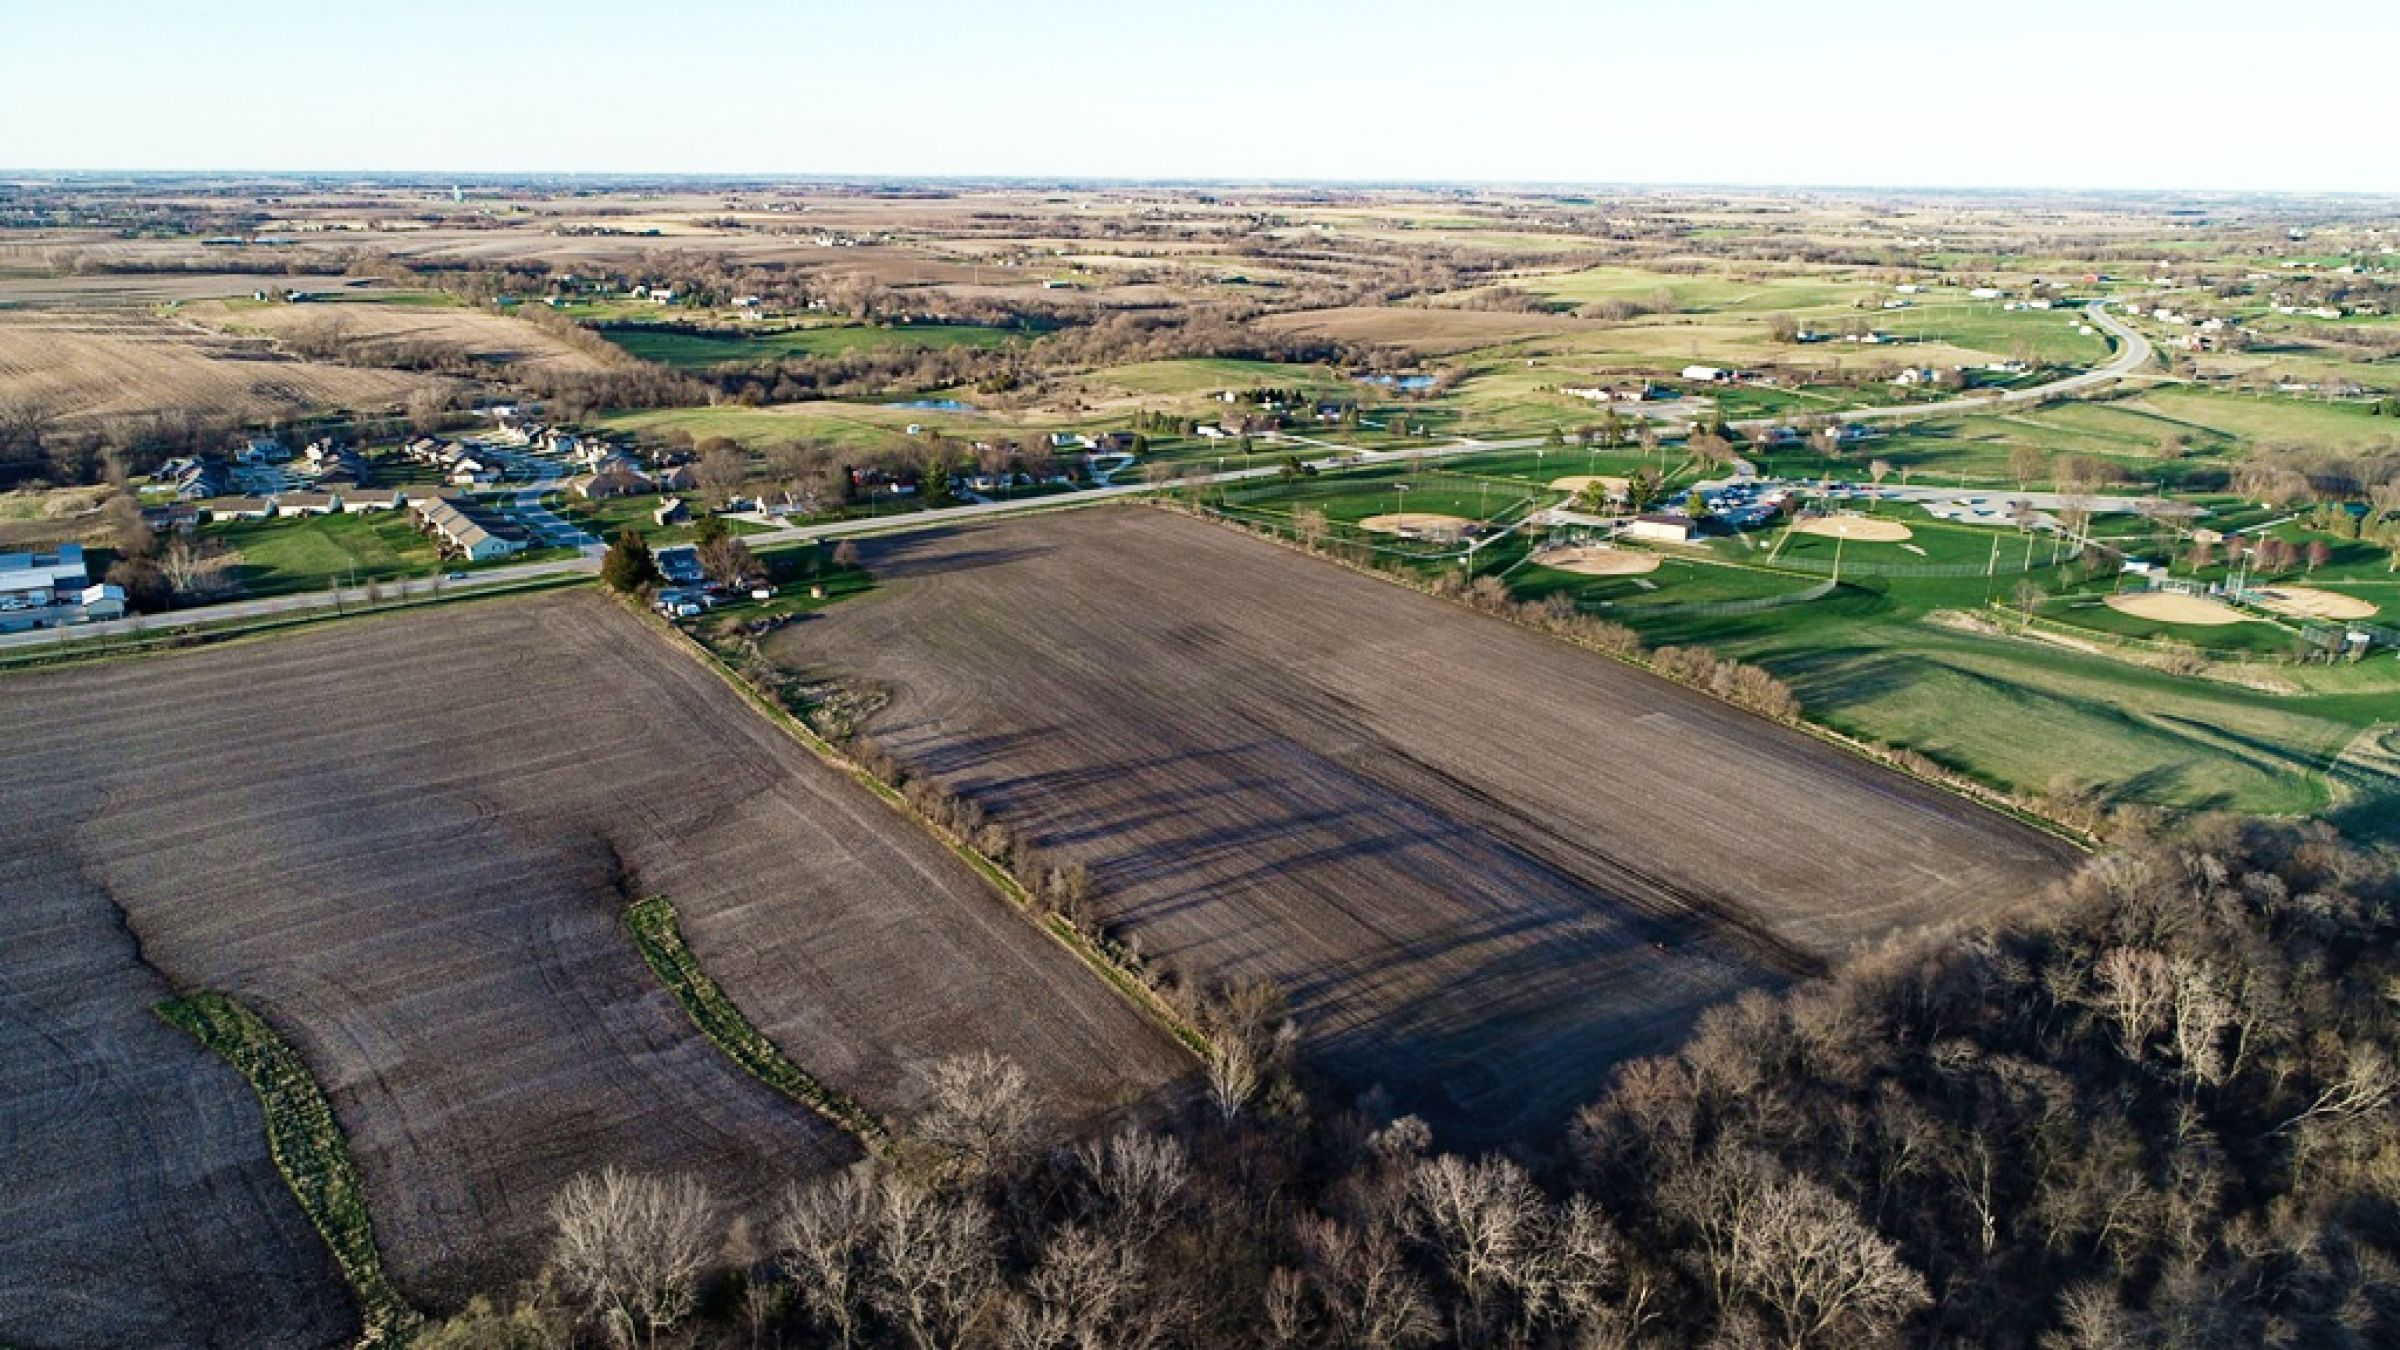 Peoples Company Warren County Land for Sale - 19 acres - 2103 E 2nd Ave. Indianola, IA 50125 - #14464